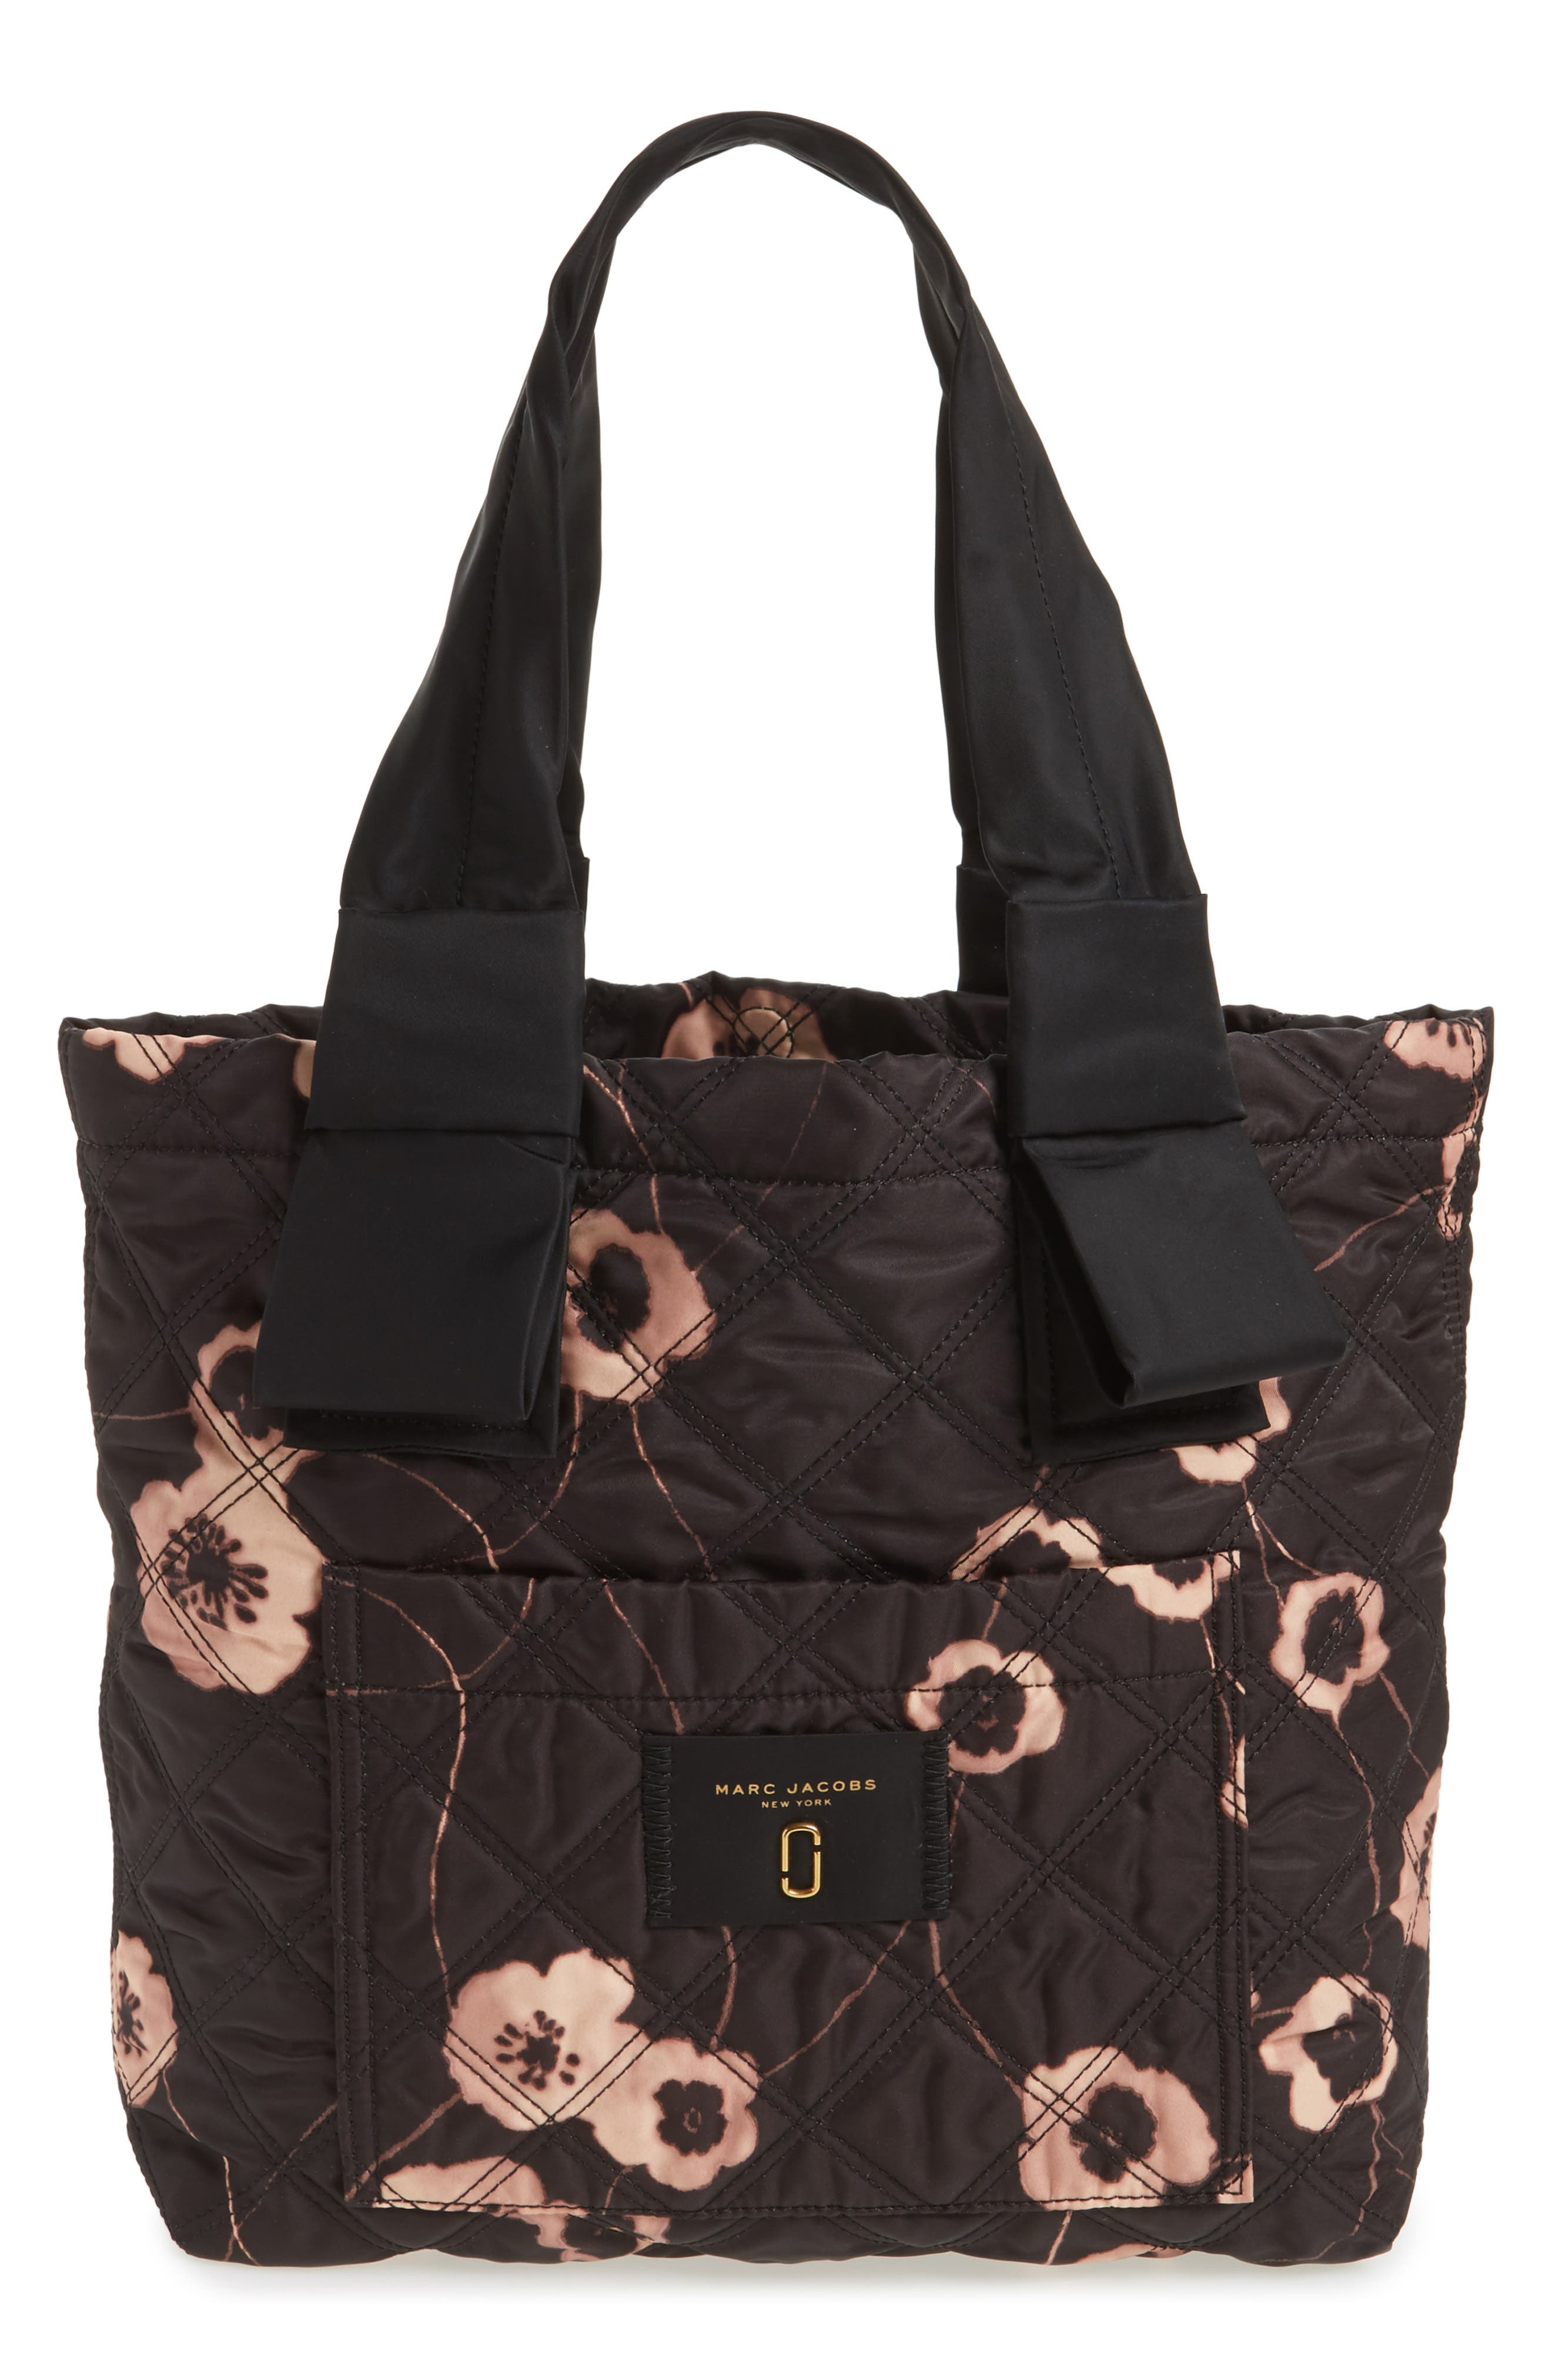 Alternate Image 1 Selected - MARC JACOBS Small Violet Vines Knot Tote